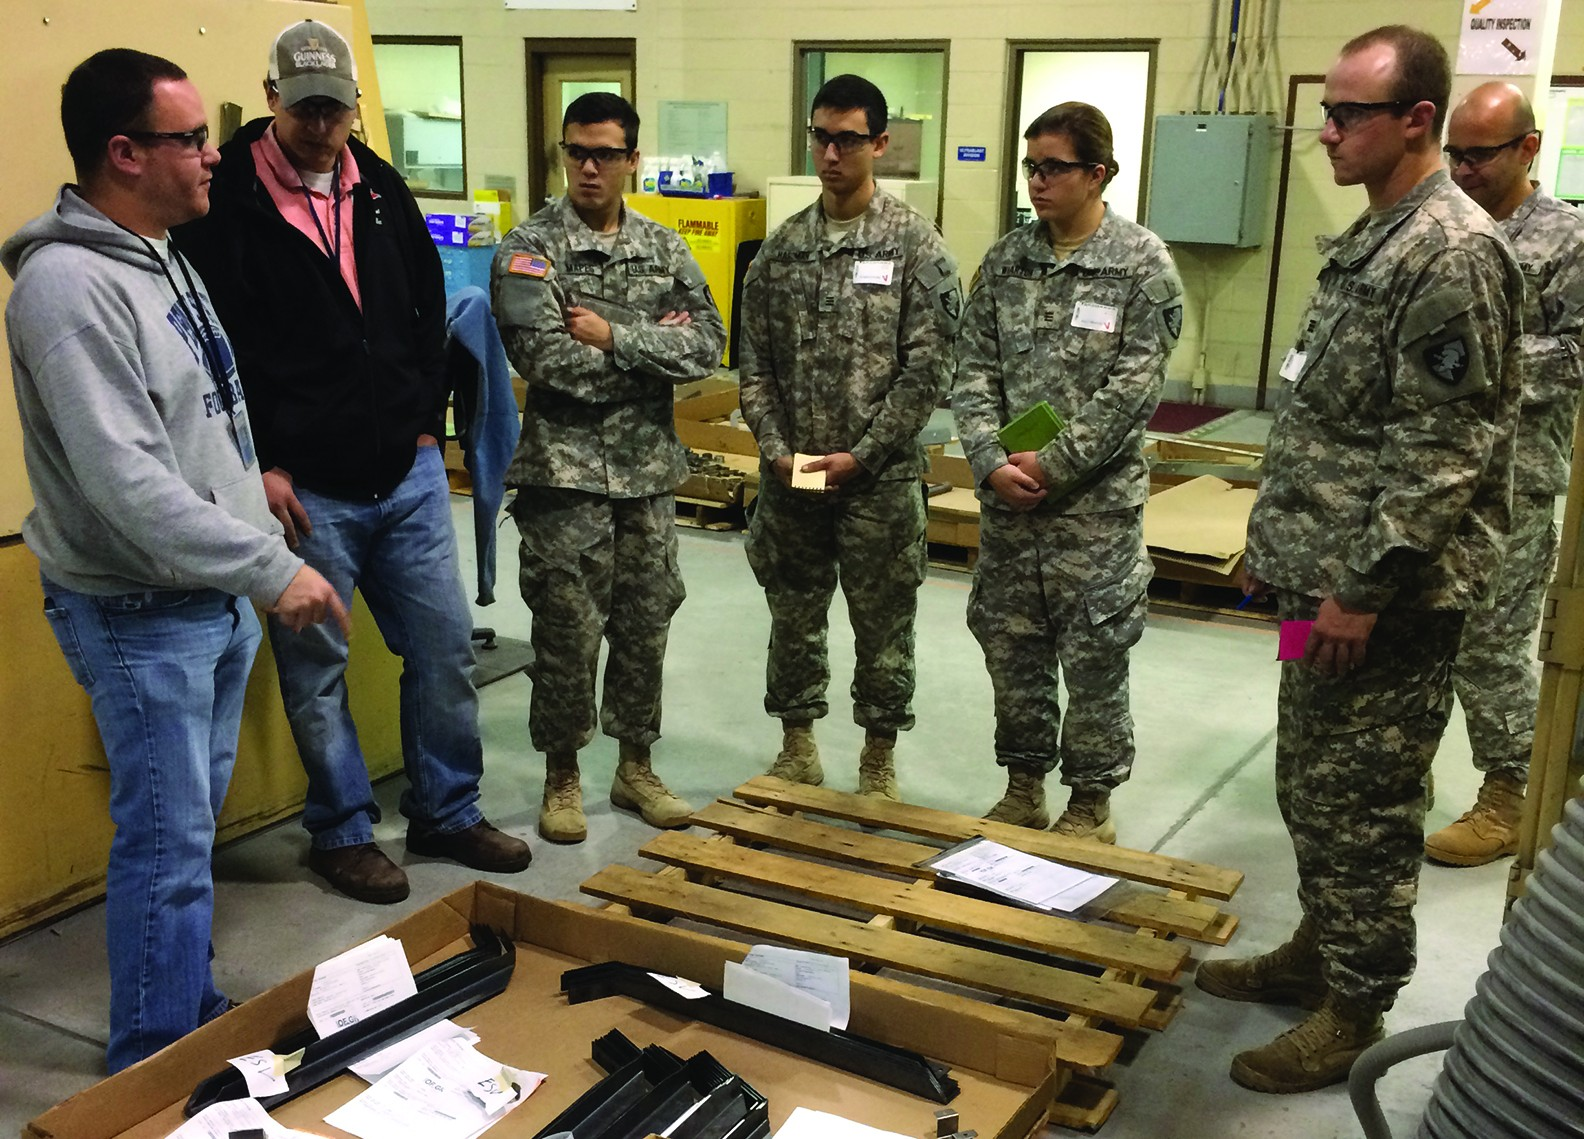 Chore Charts: Timesaving idea profitable for depot West Point cadets | Article ,Chart